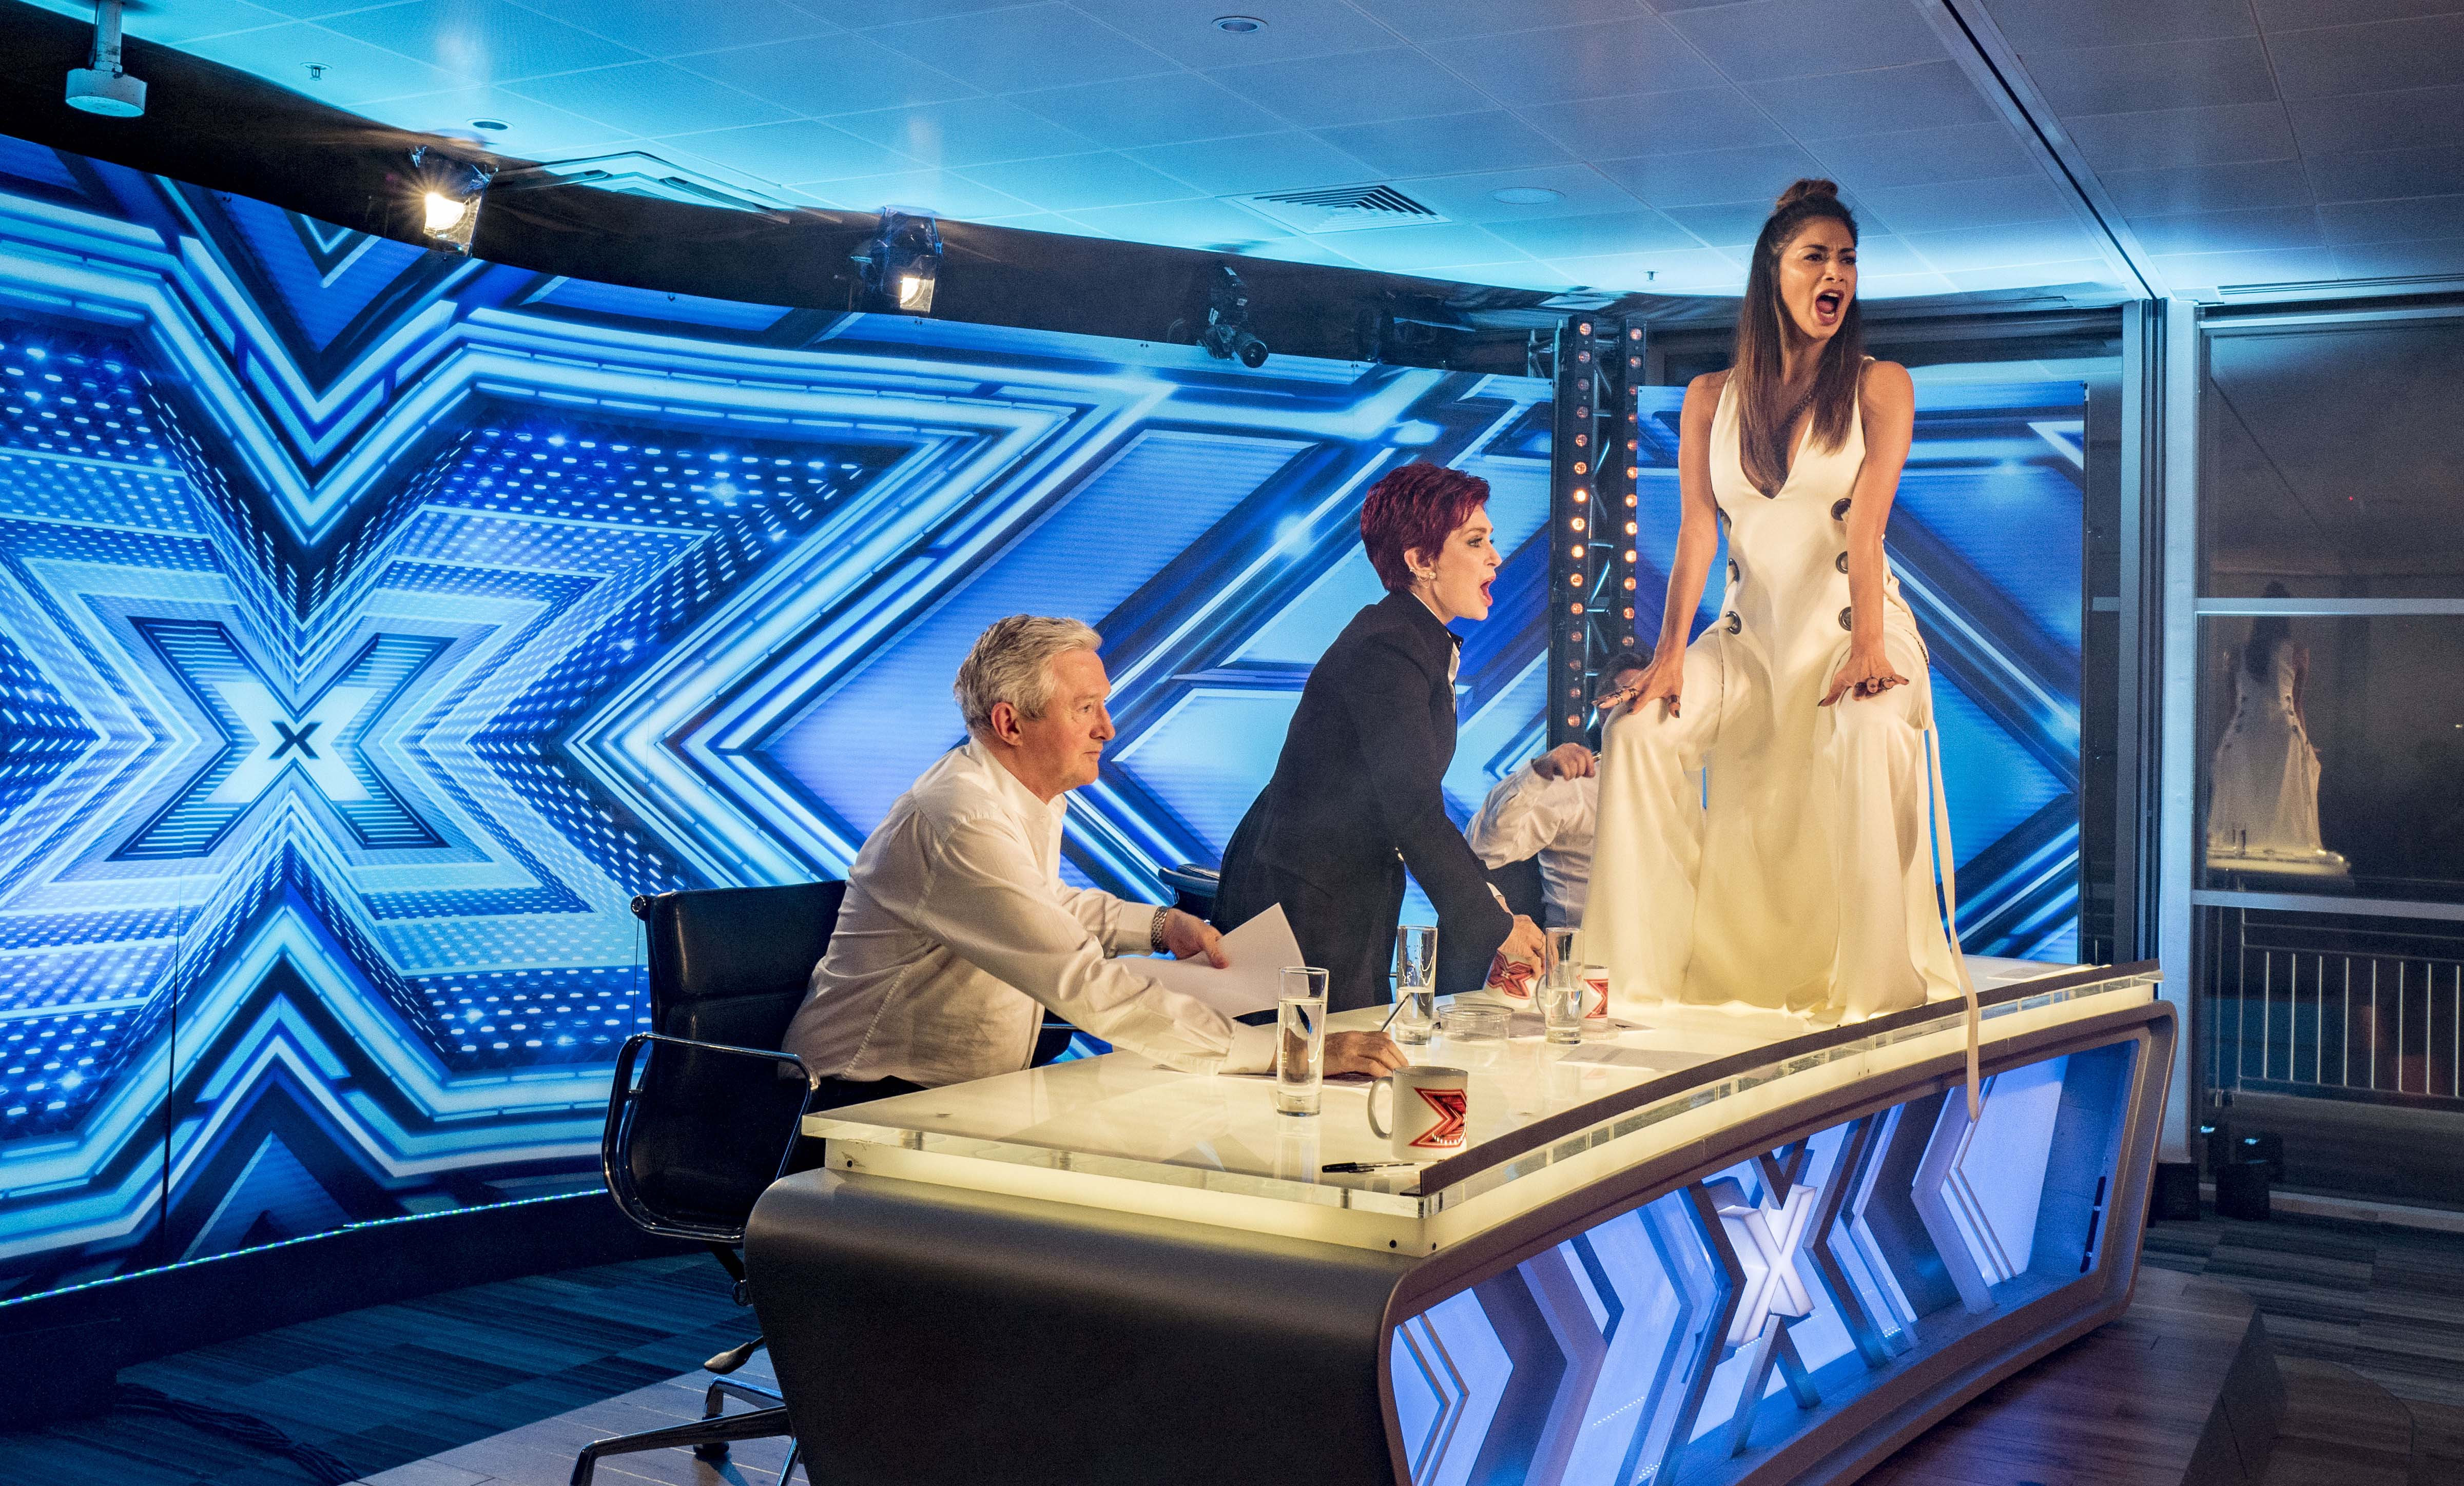 What times xfactor on